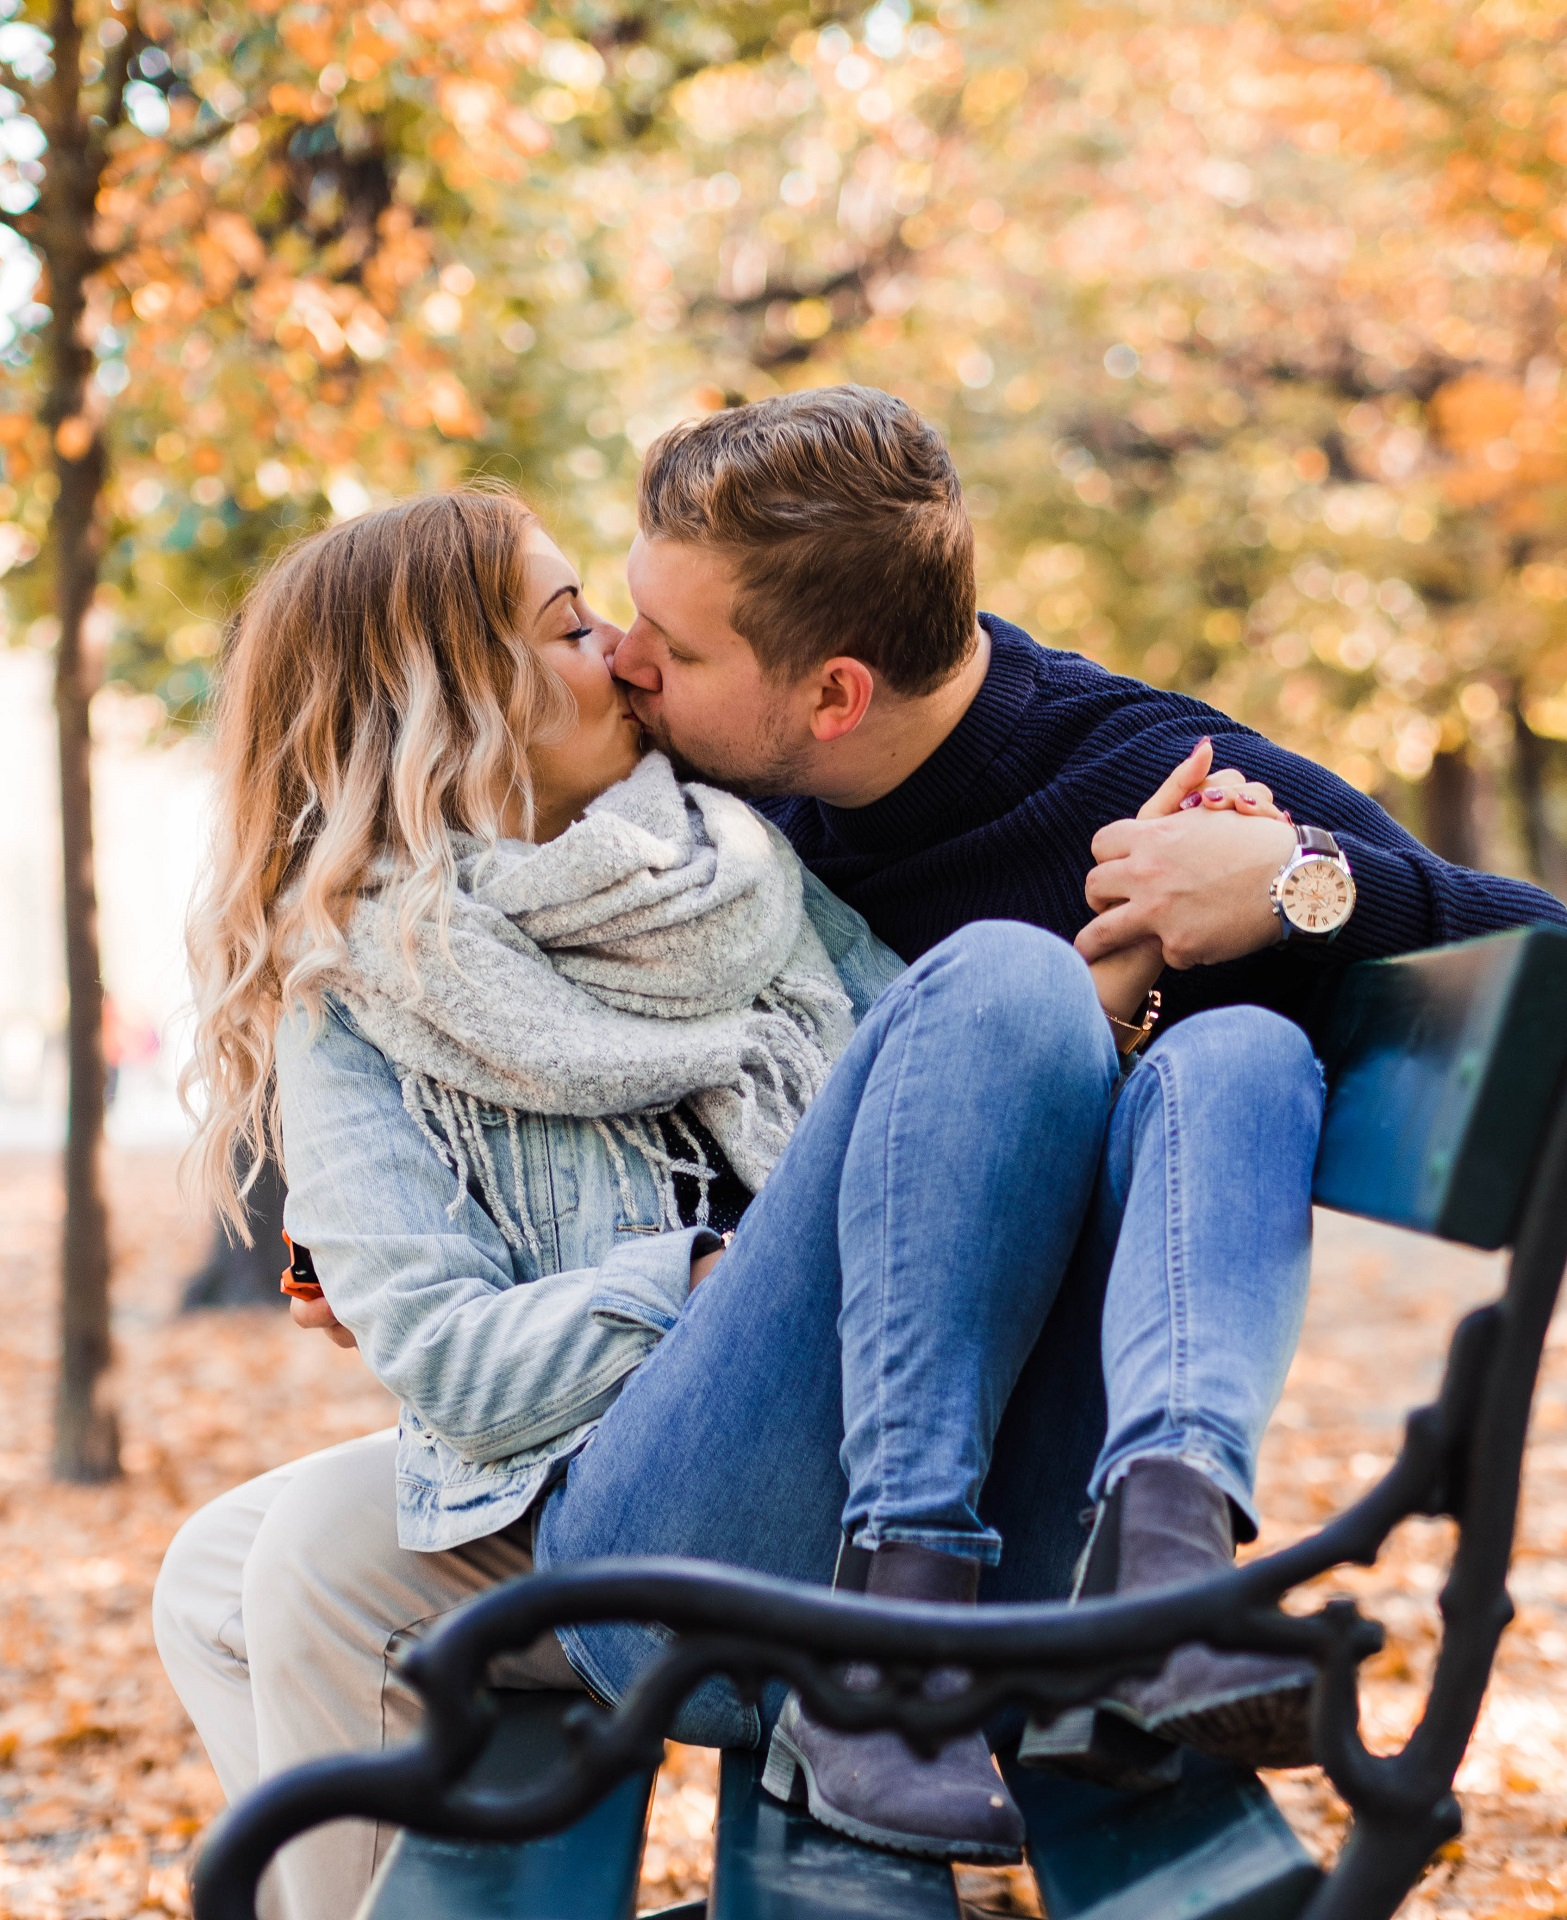 Fall Engagement Session Couple Photo Vienna Schönbrunn